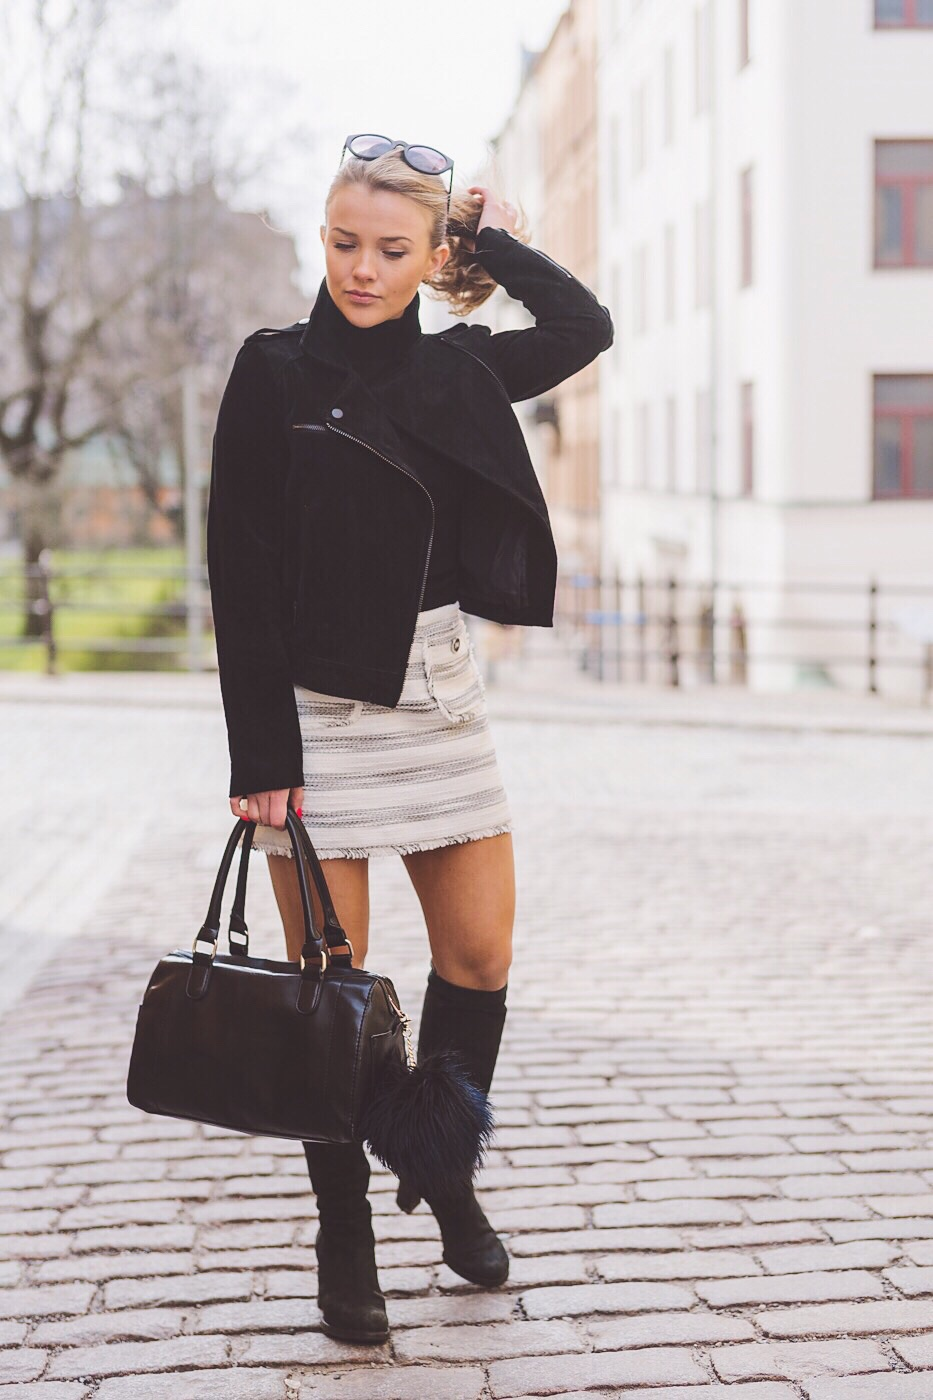 Street Style, Fashion 2015: Molly Rustas is wearing a creme River Island skirt with a jet black biker jacket and leather handbag from Mango